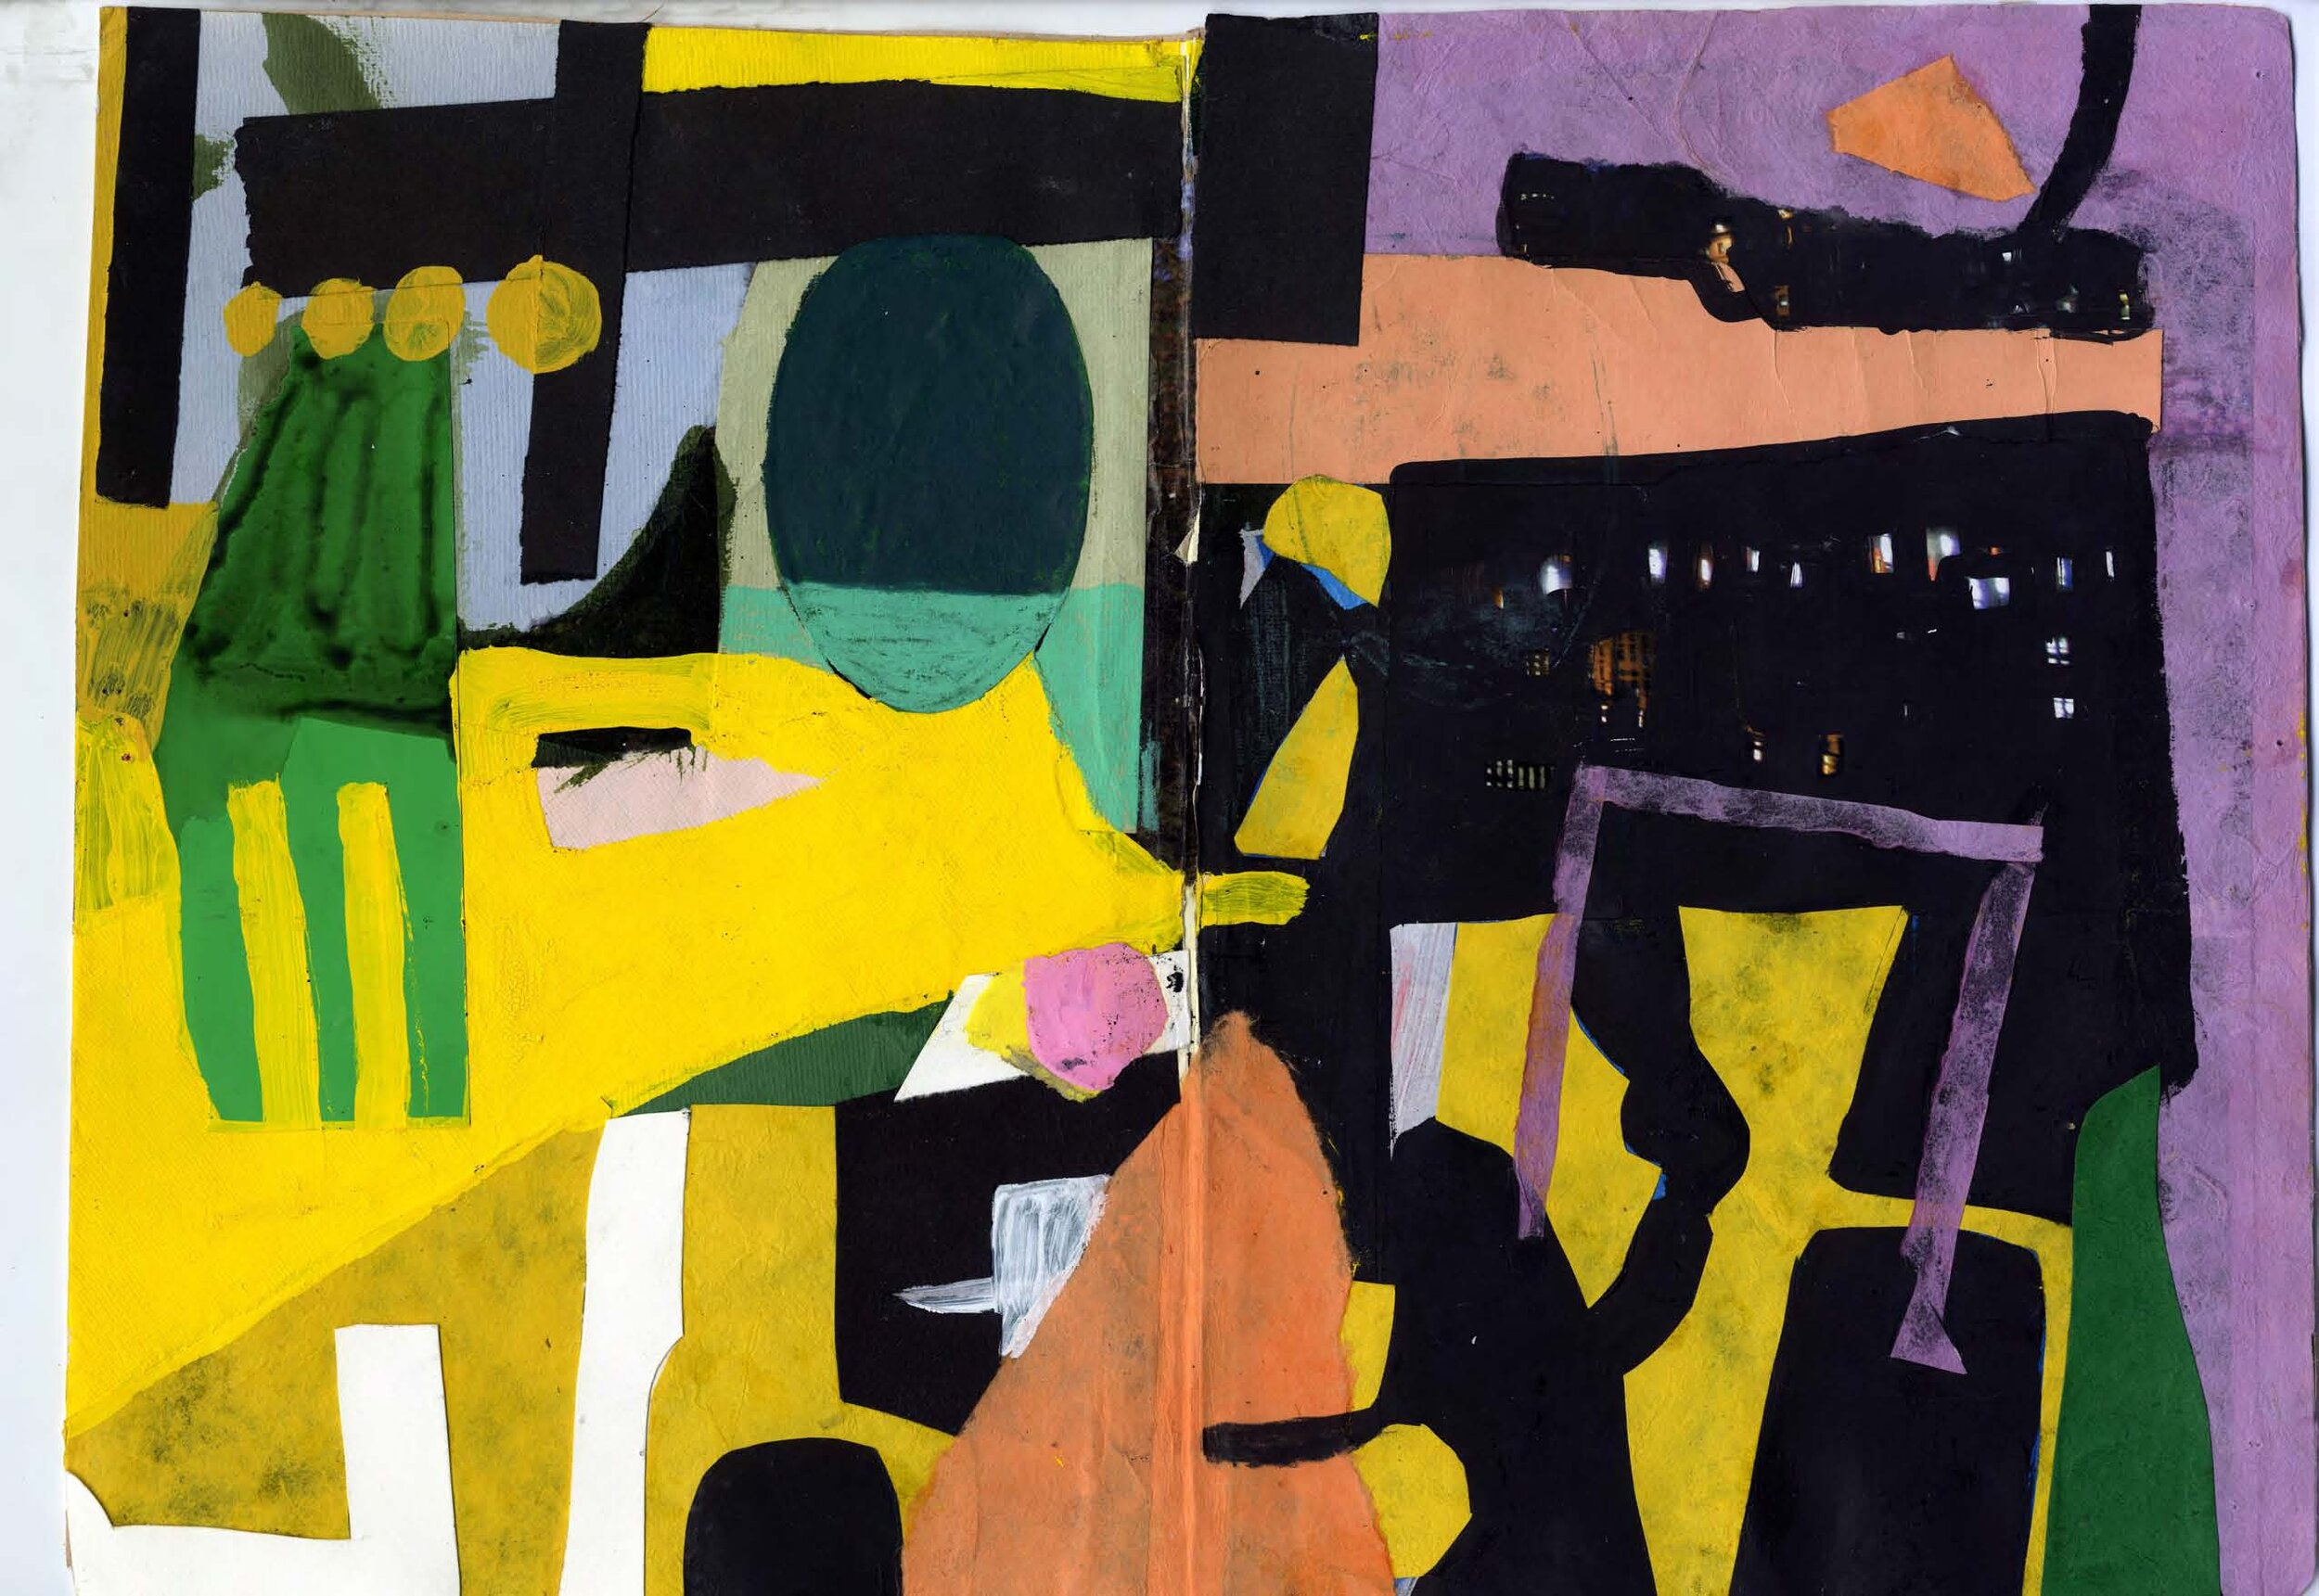 """""""Dog taxi""""  Gouache, acrylic and paper on paper  11.5 X 16.5 """"  2014"""